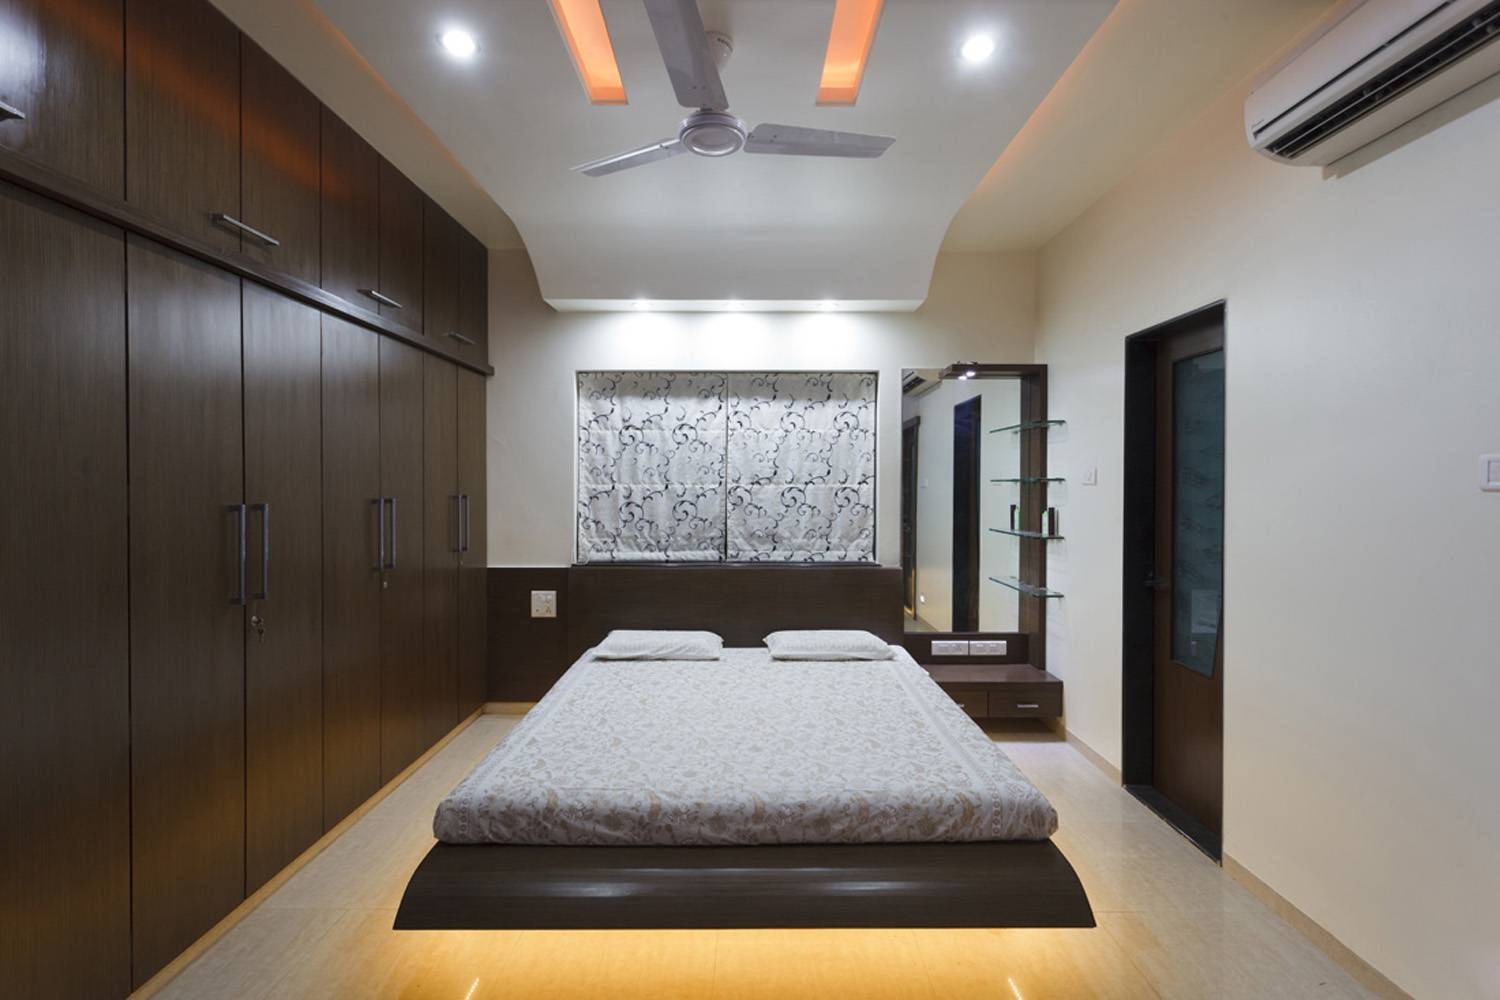 Bed room interior design portfolio leading interior for All about interior design